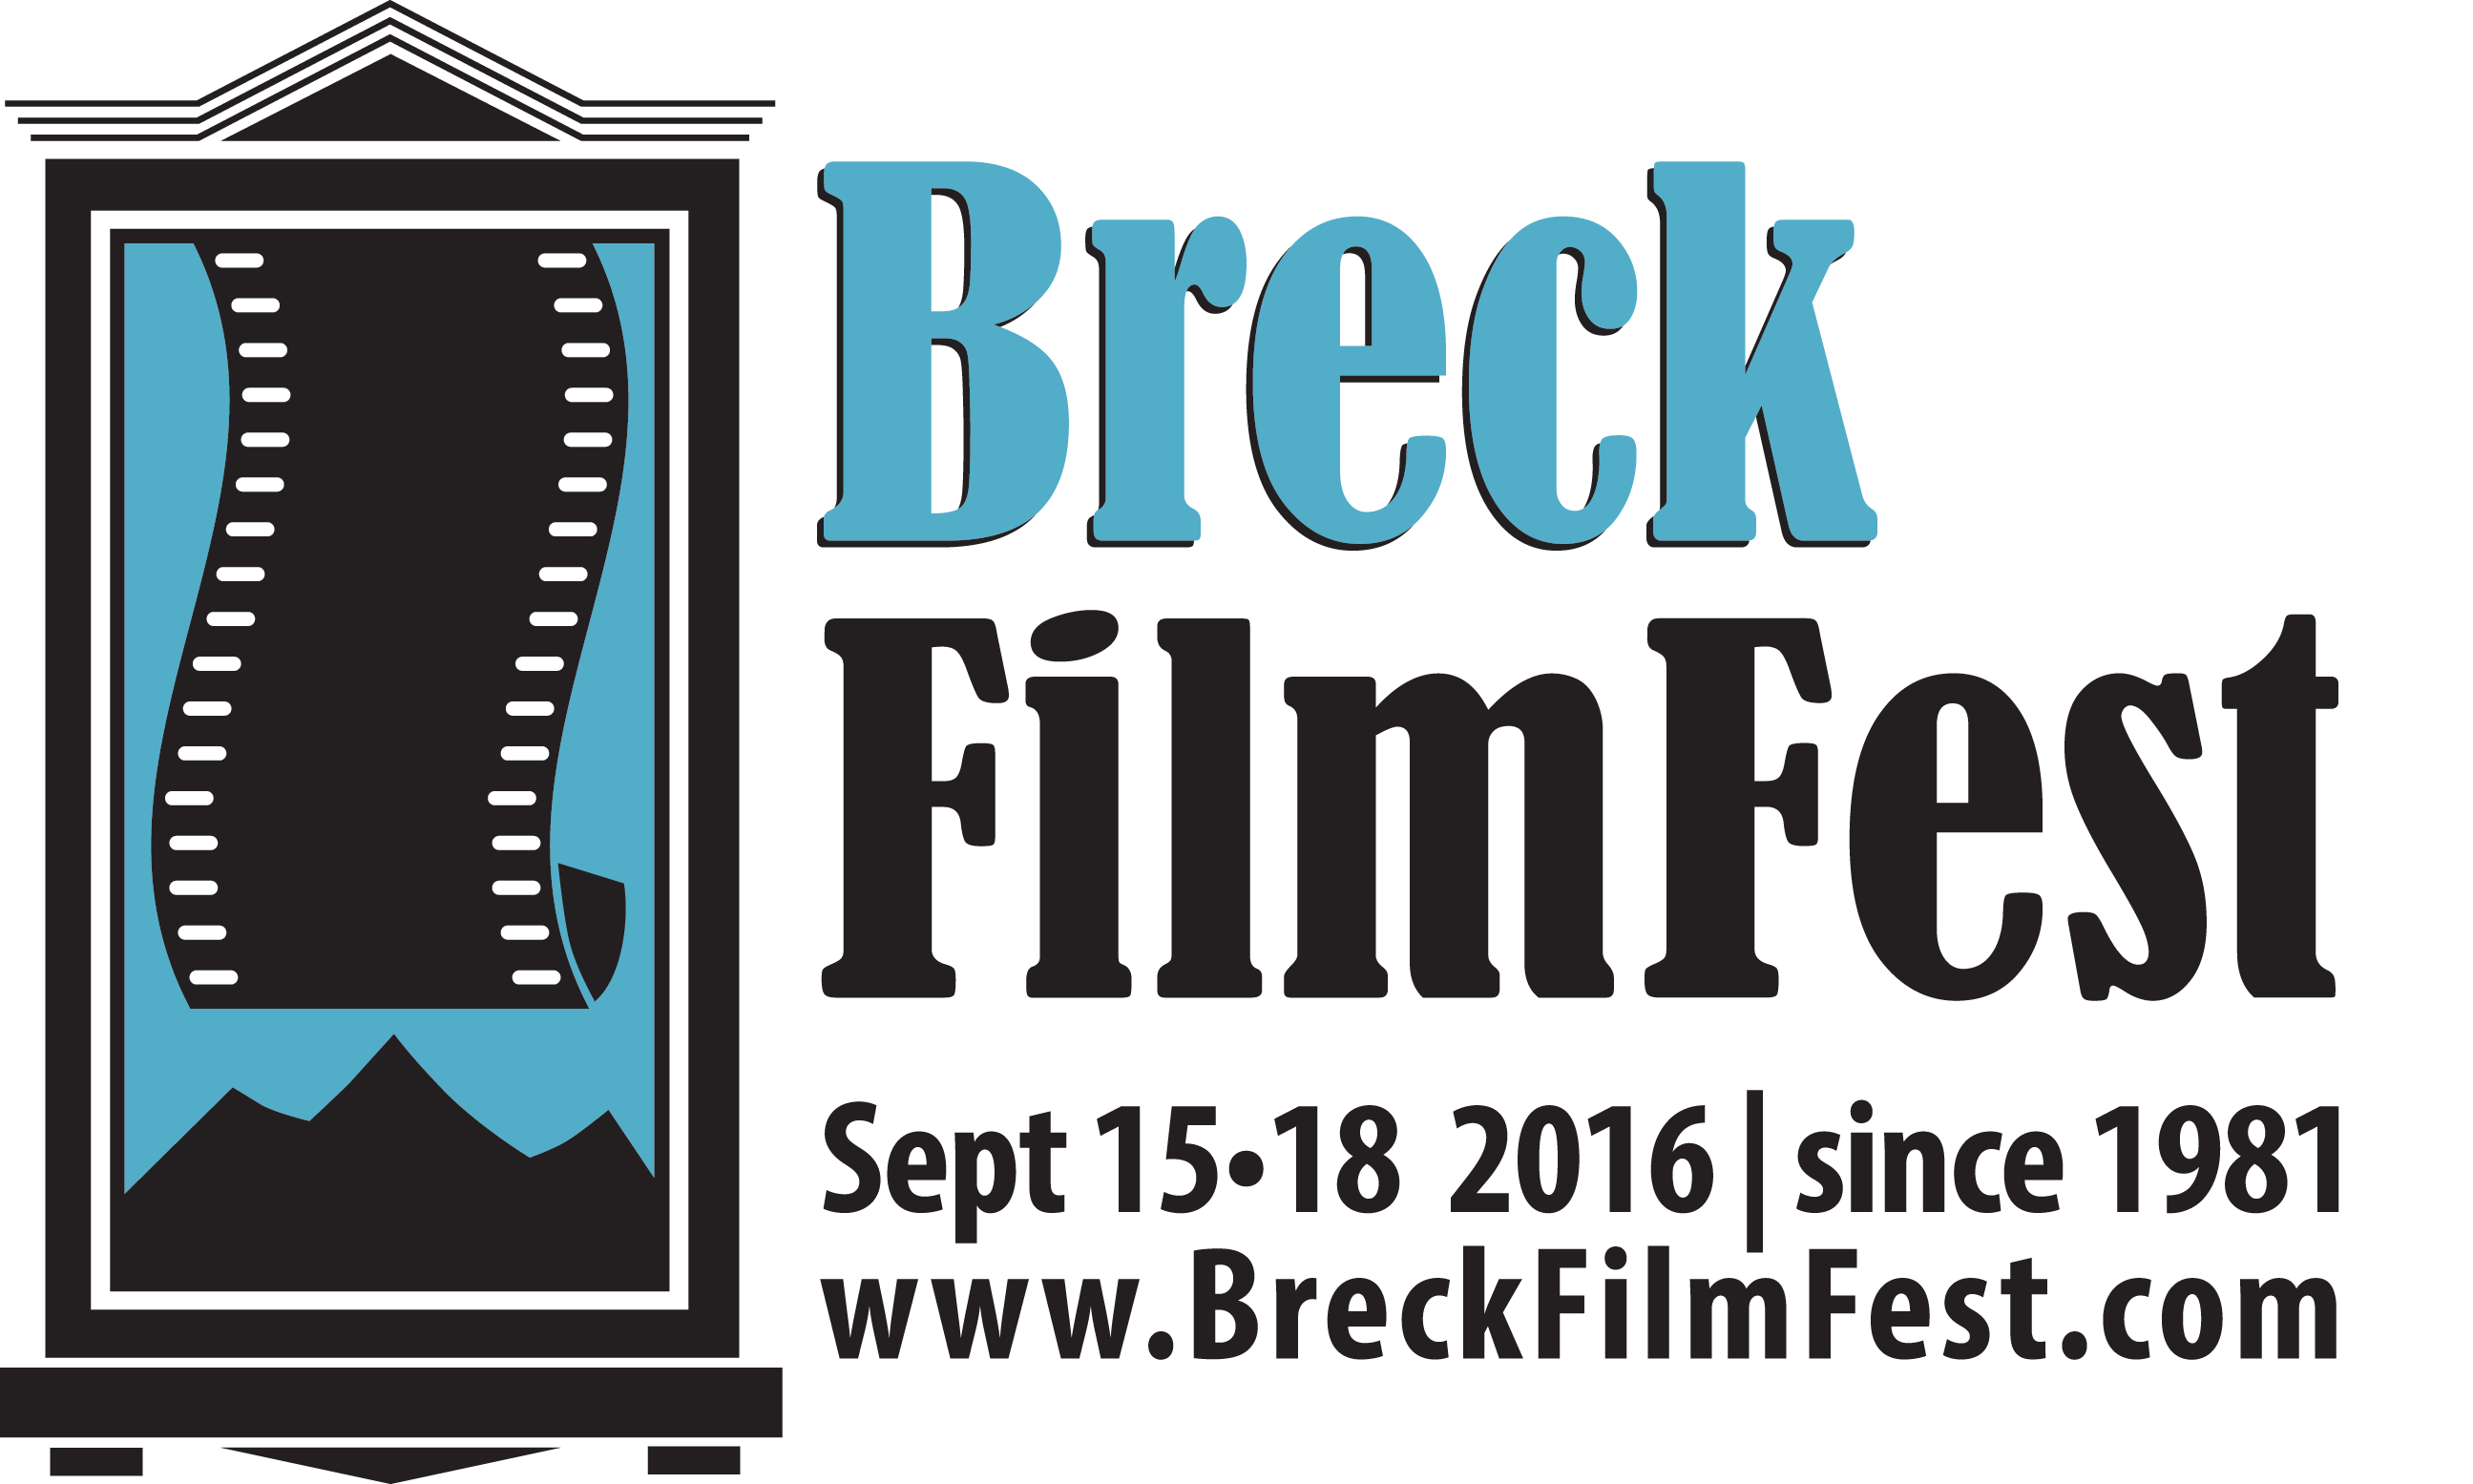 Source: Breckenridge Film Festival.